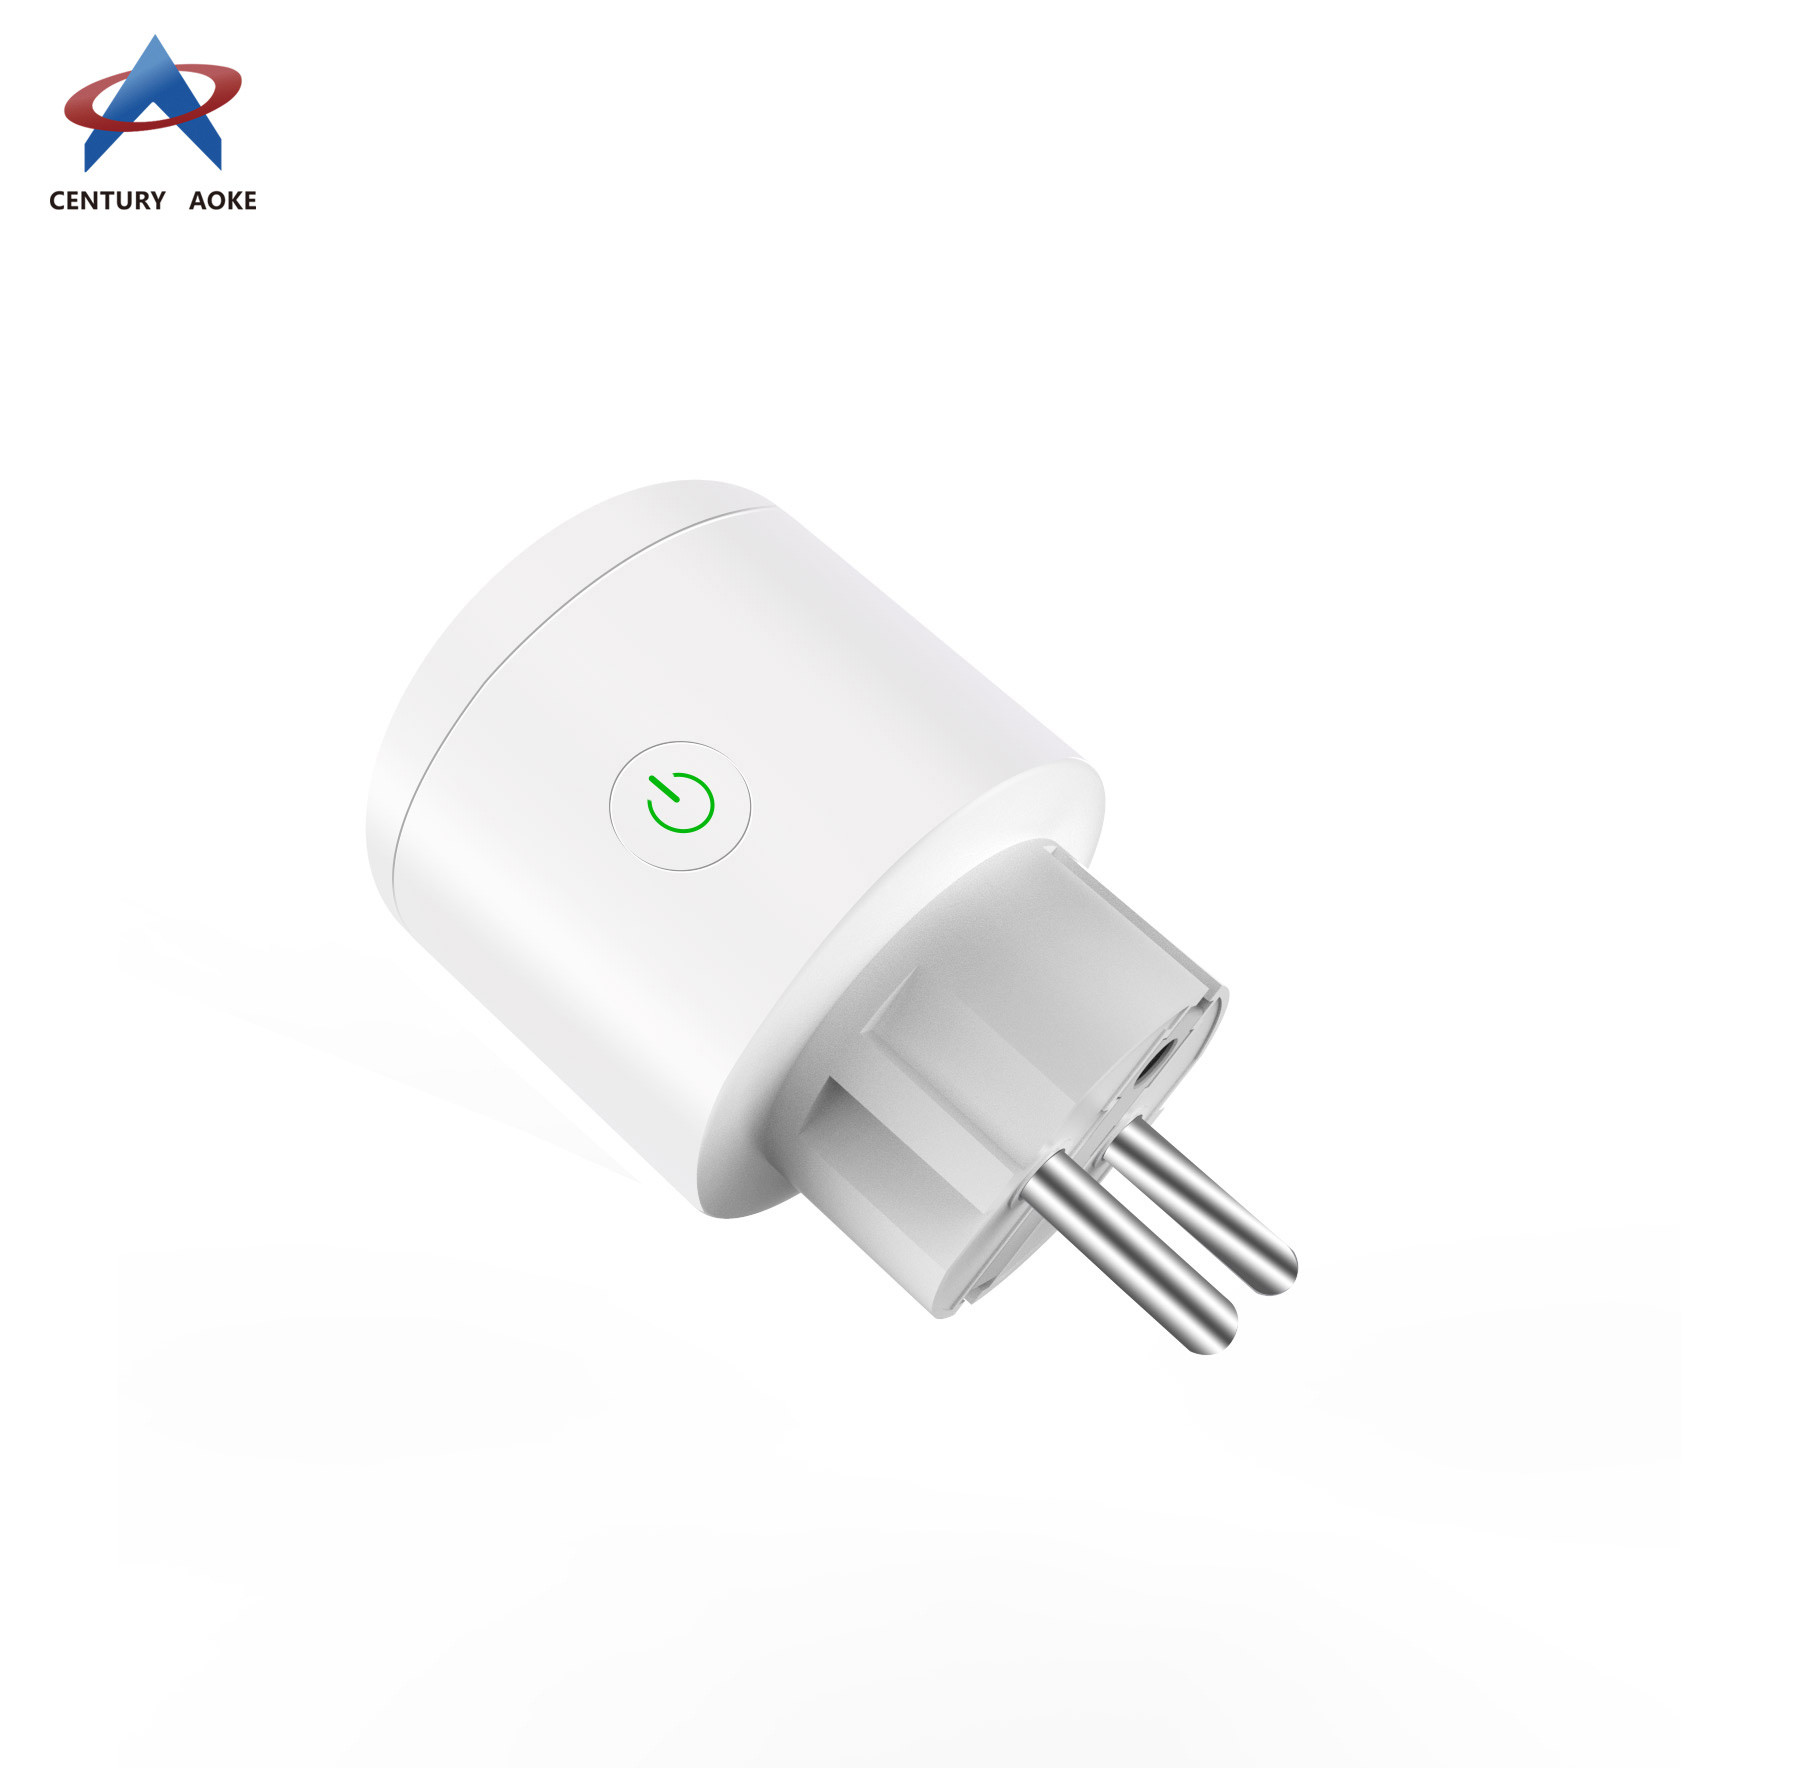 EU smart socket wifi light socket AK-P11W-07F